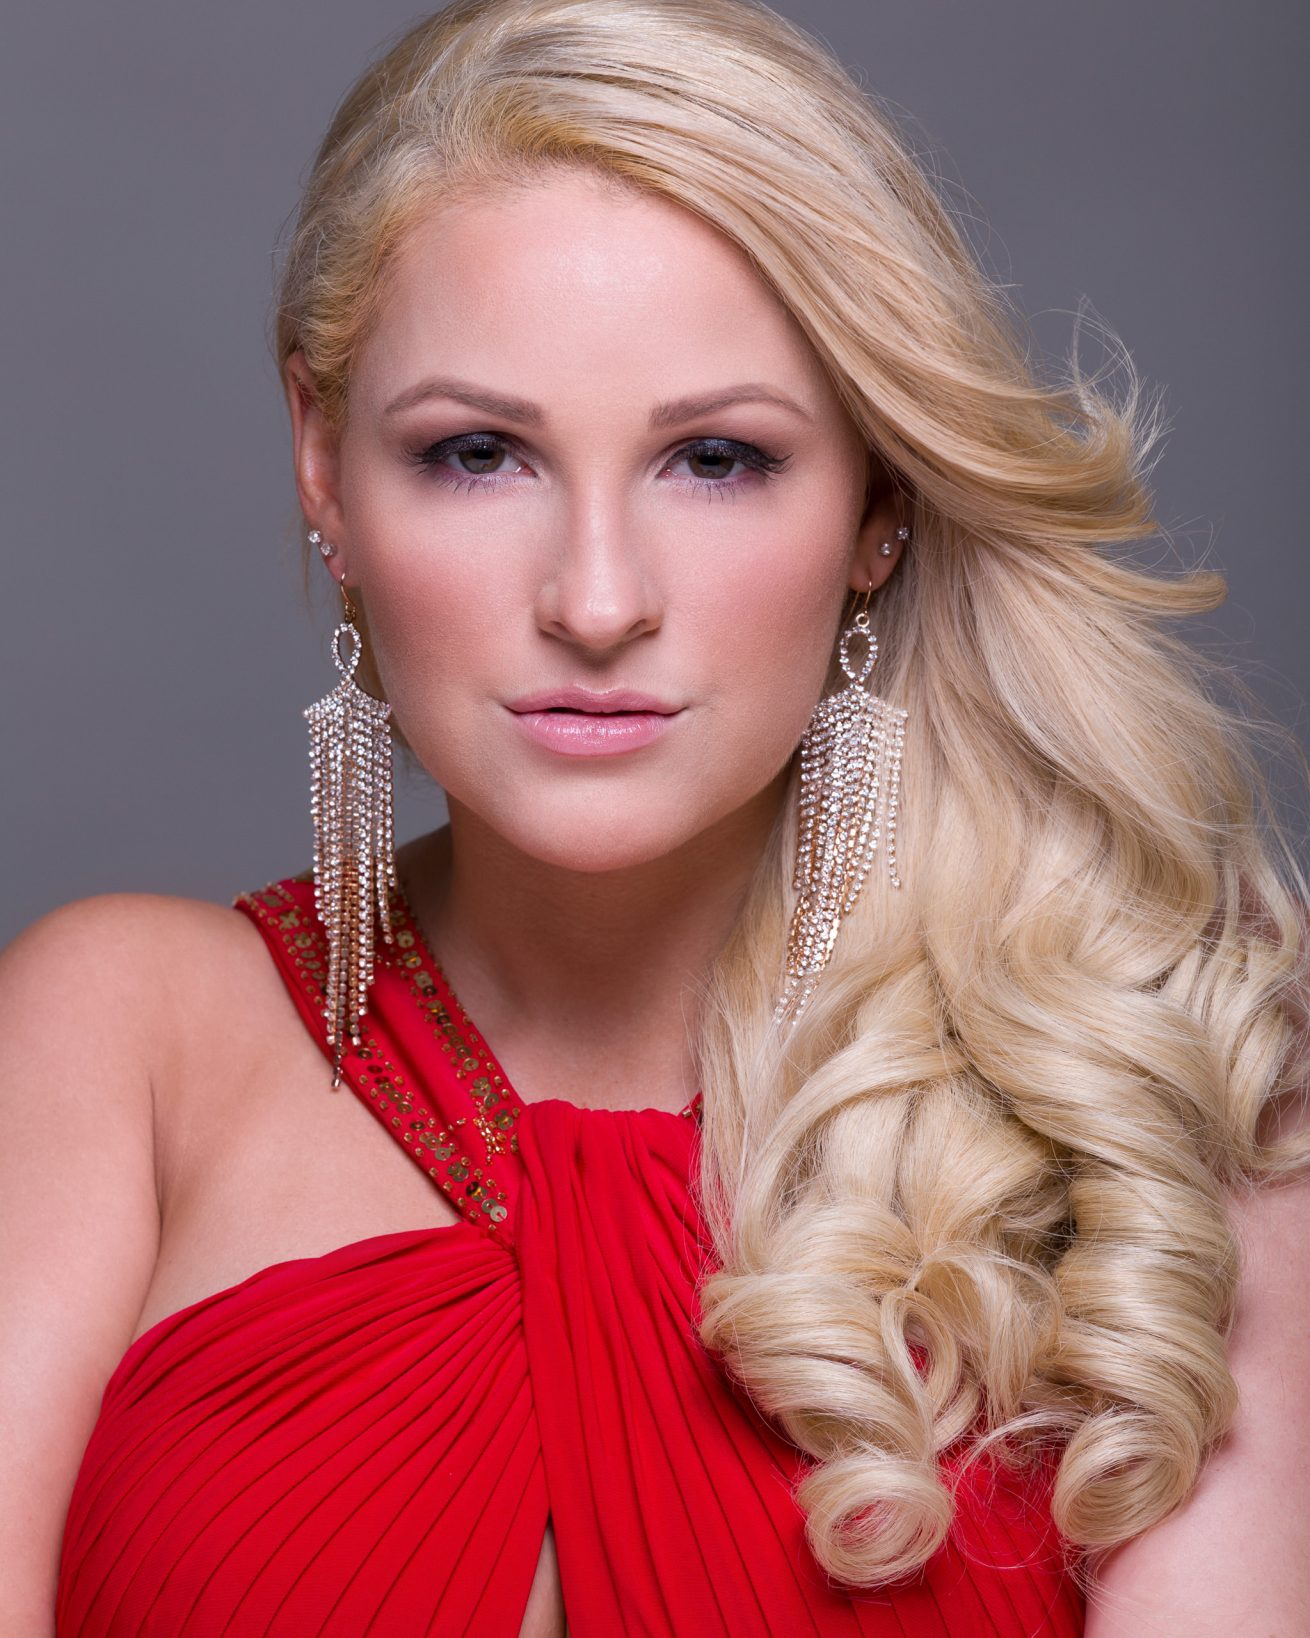 Ms. Woman DC United States 2015 – Katerine